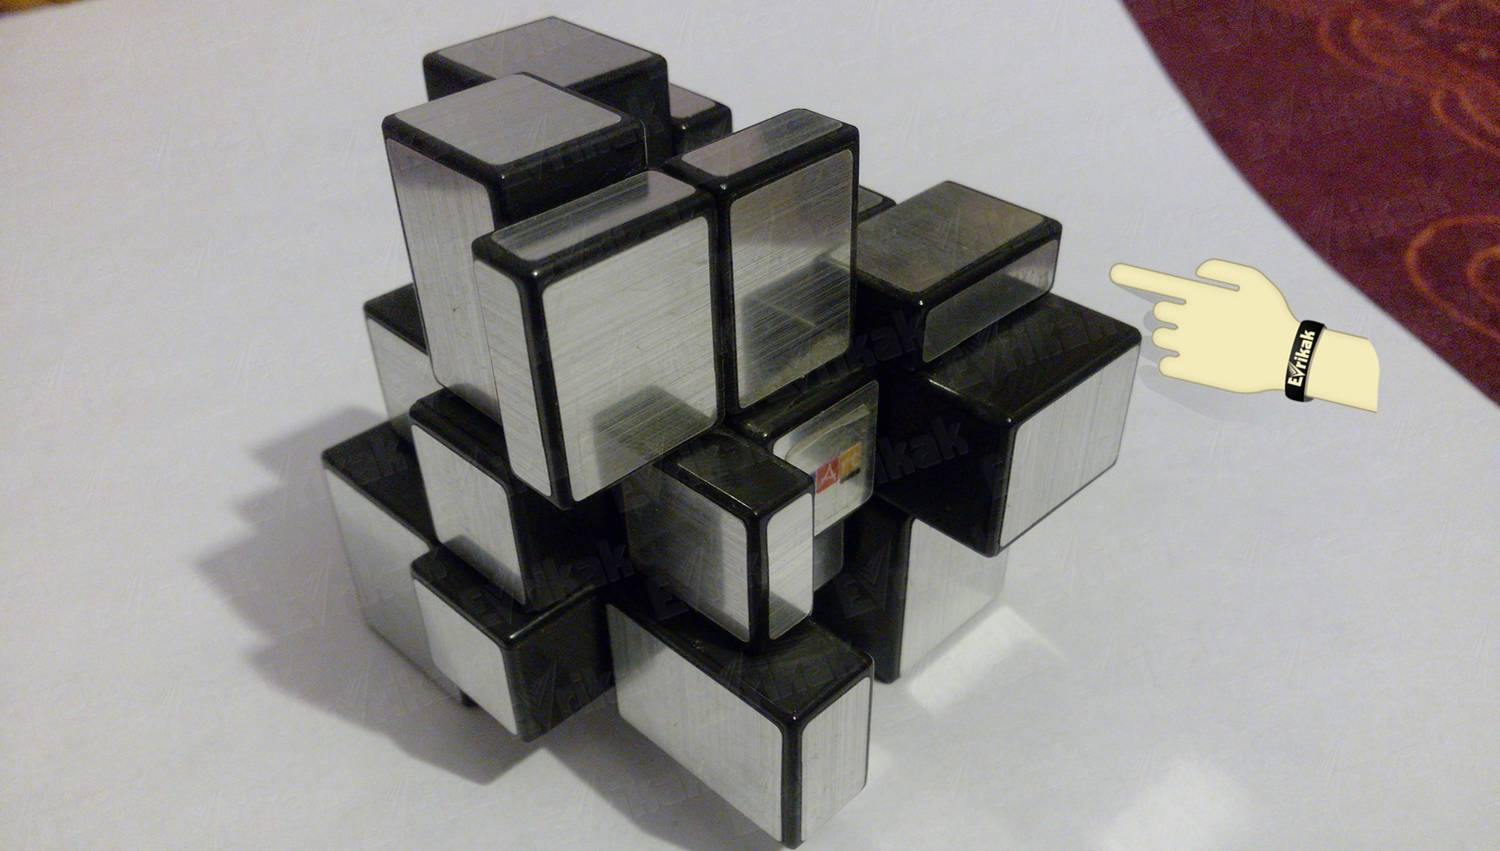 How to solve a mirror Rubik's Cube: step by step instruction with photos